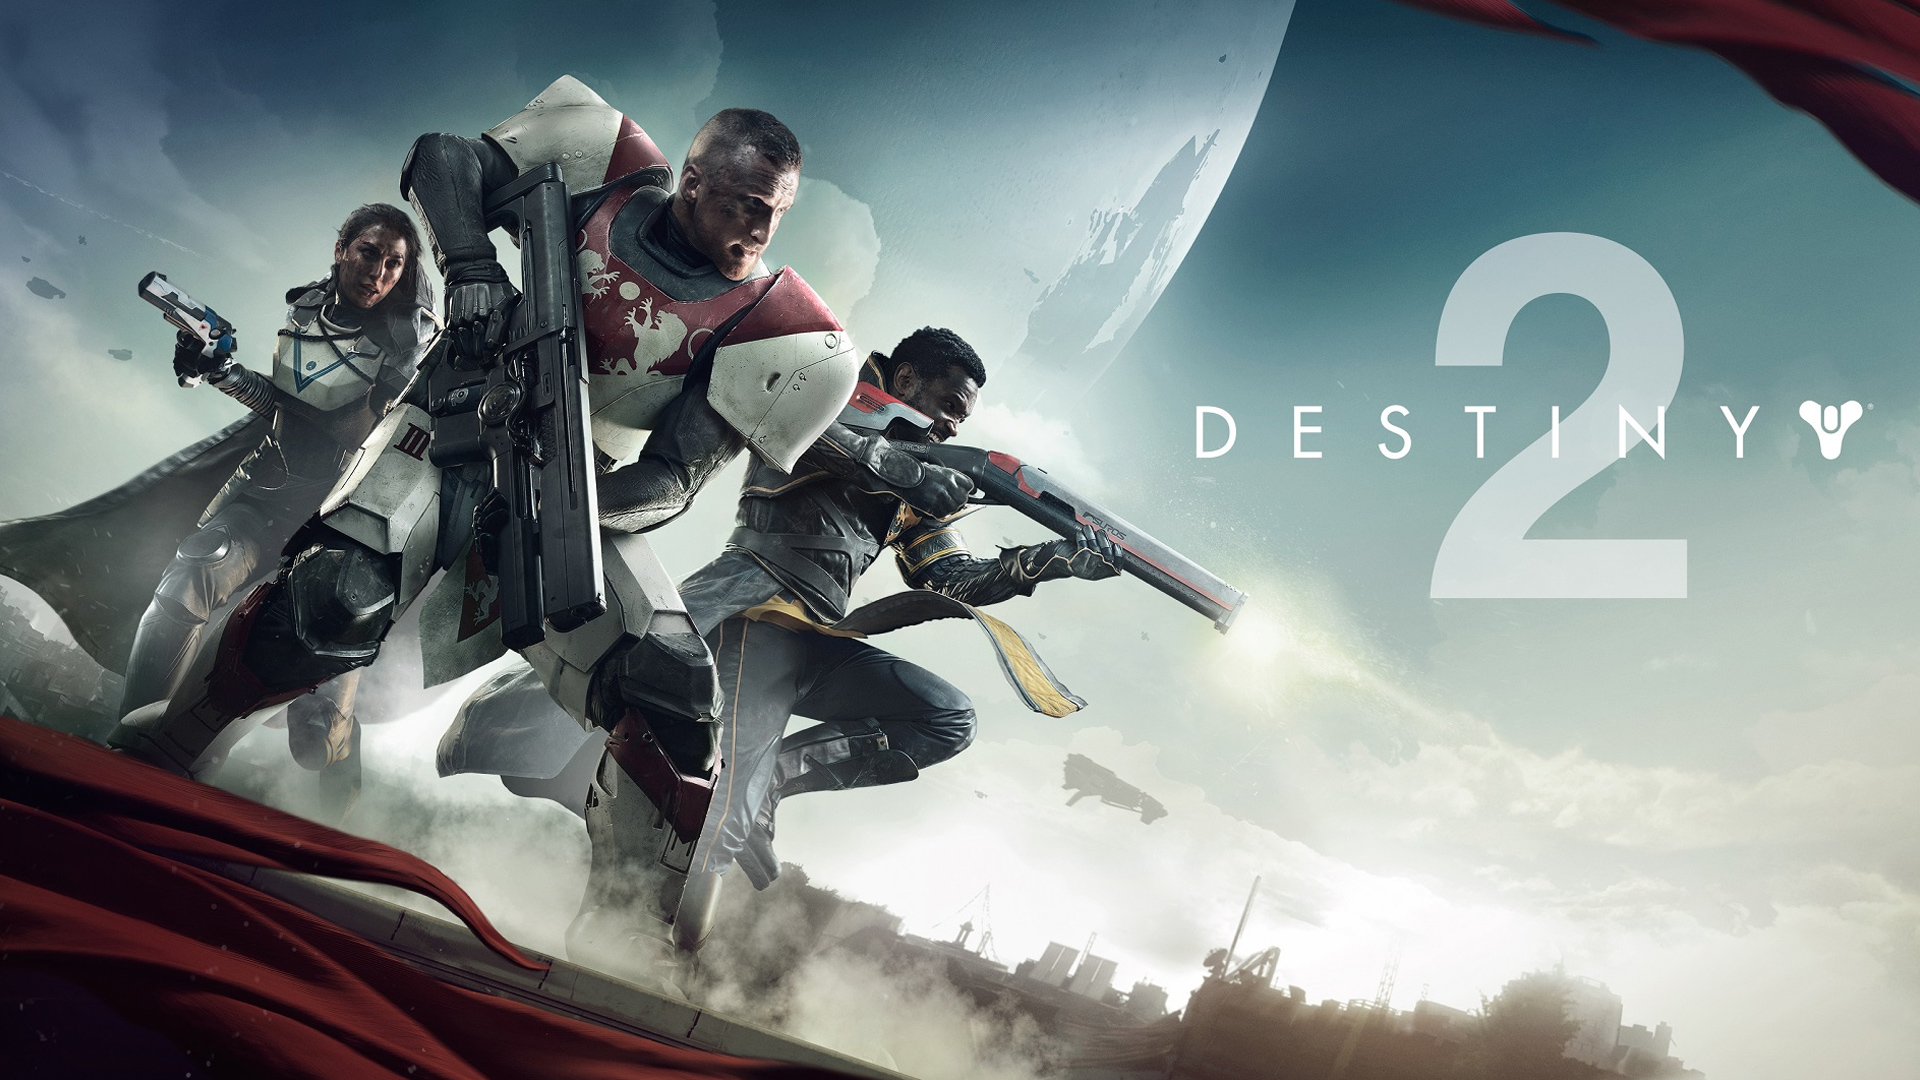 destiny-2-artwork-packaging-video-game